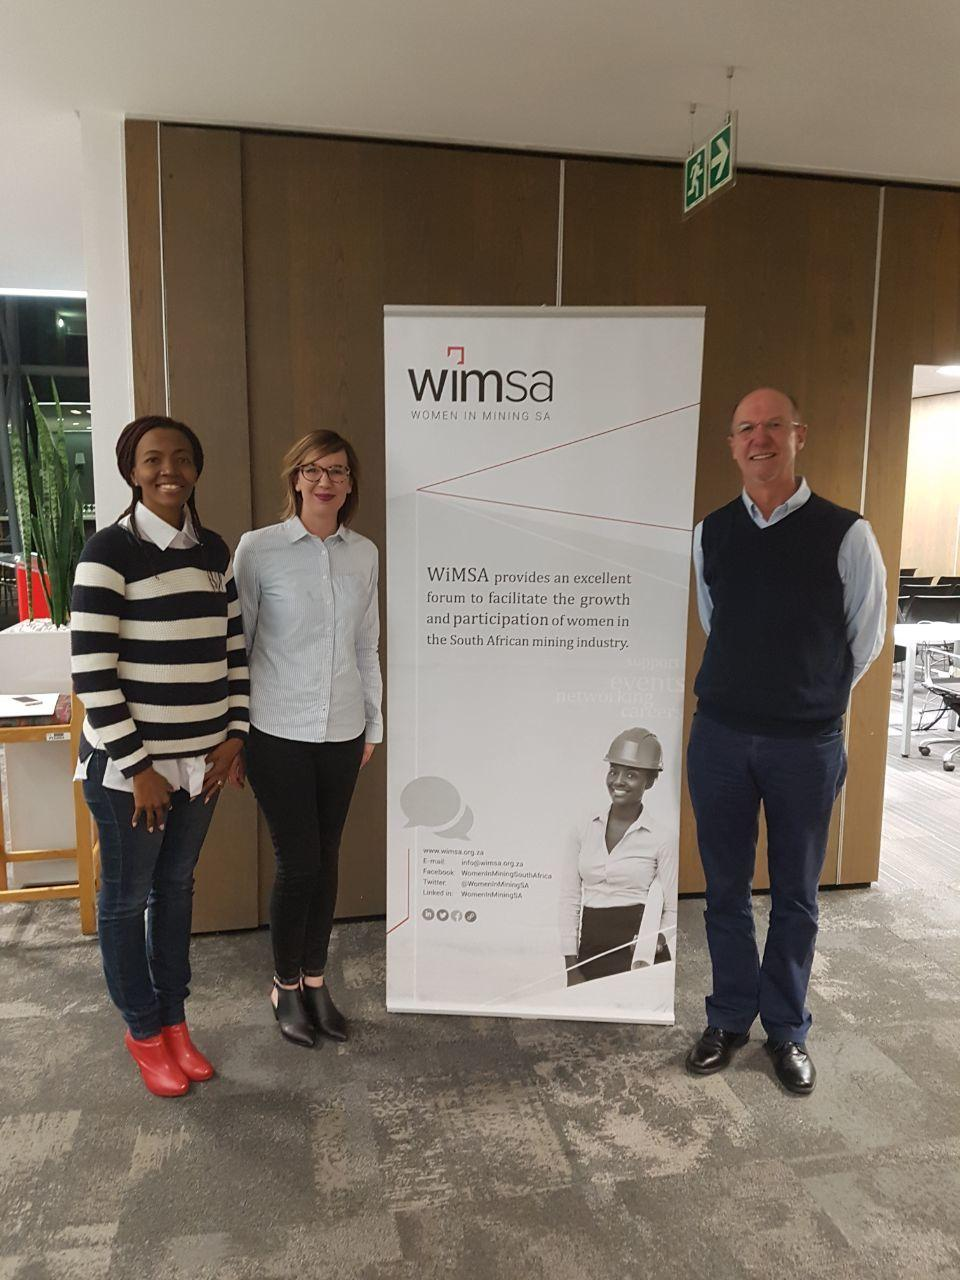 Lindiwe Nakedi, Erin Rice and Colin Rice at the Mentor's Manor event hosted at Worley Parsons